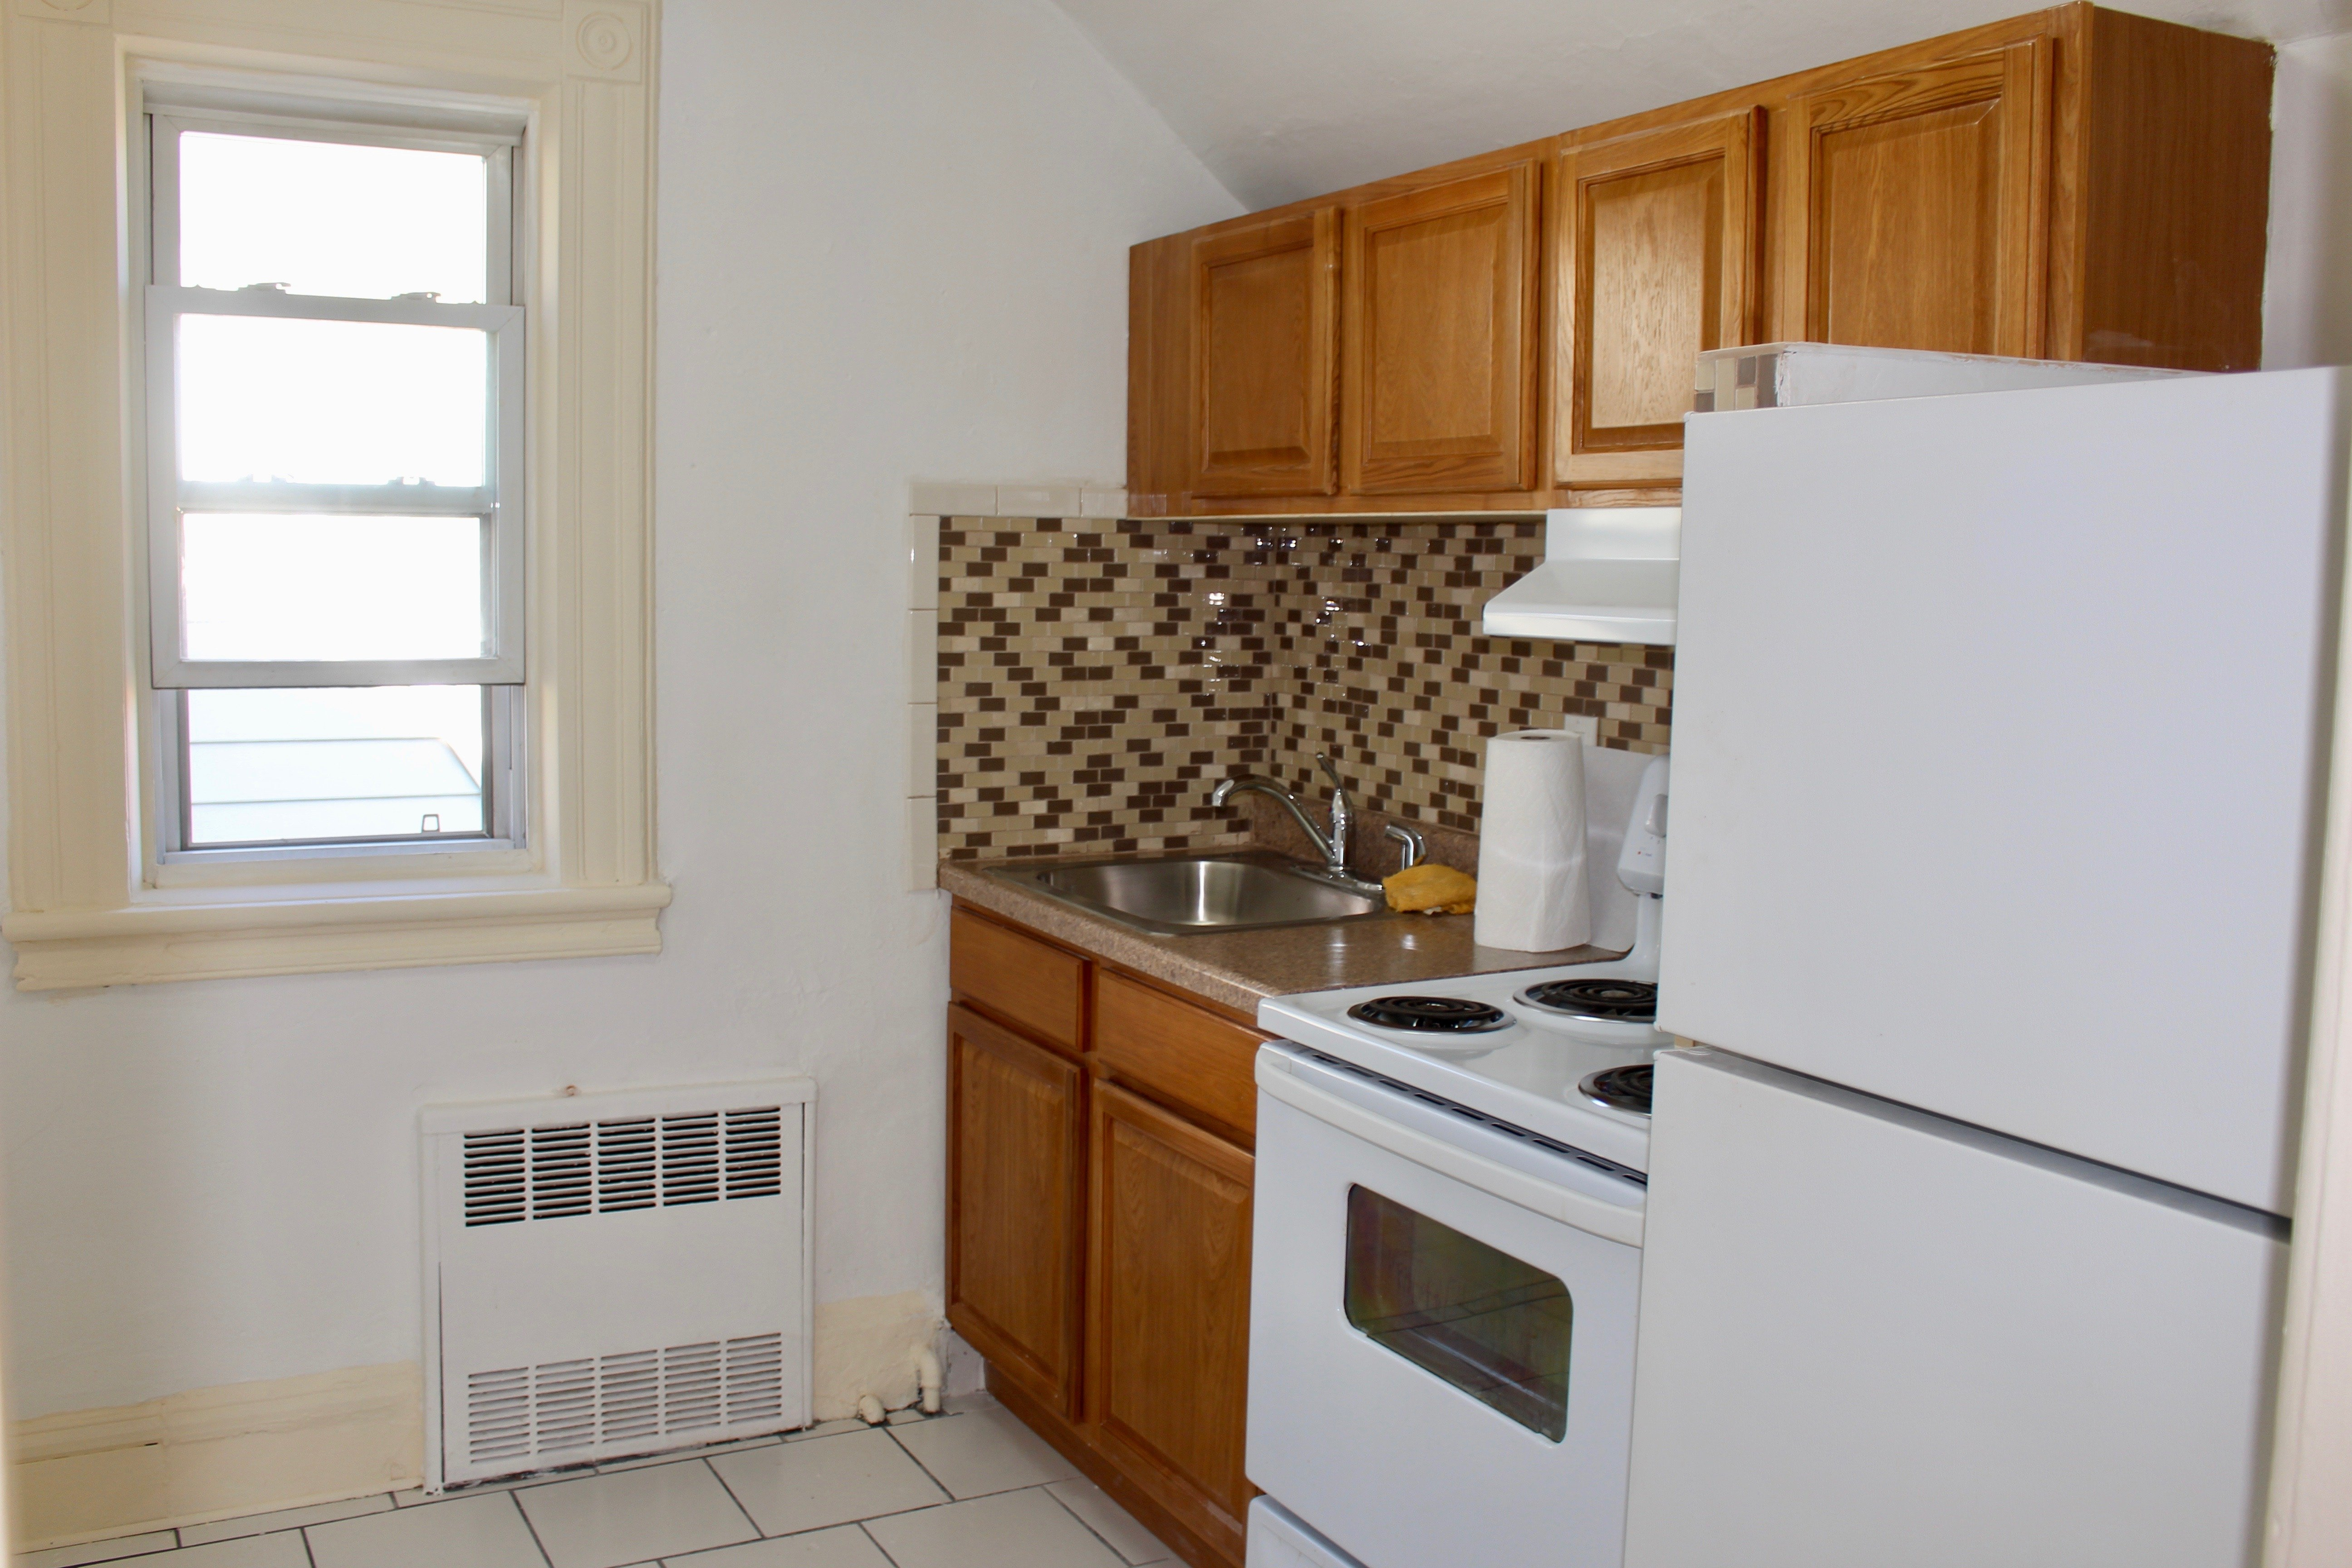 brooklyn ave 2br apt for rent crg3200-a